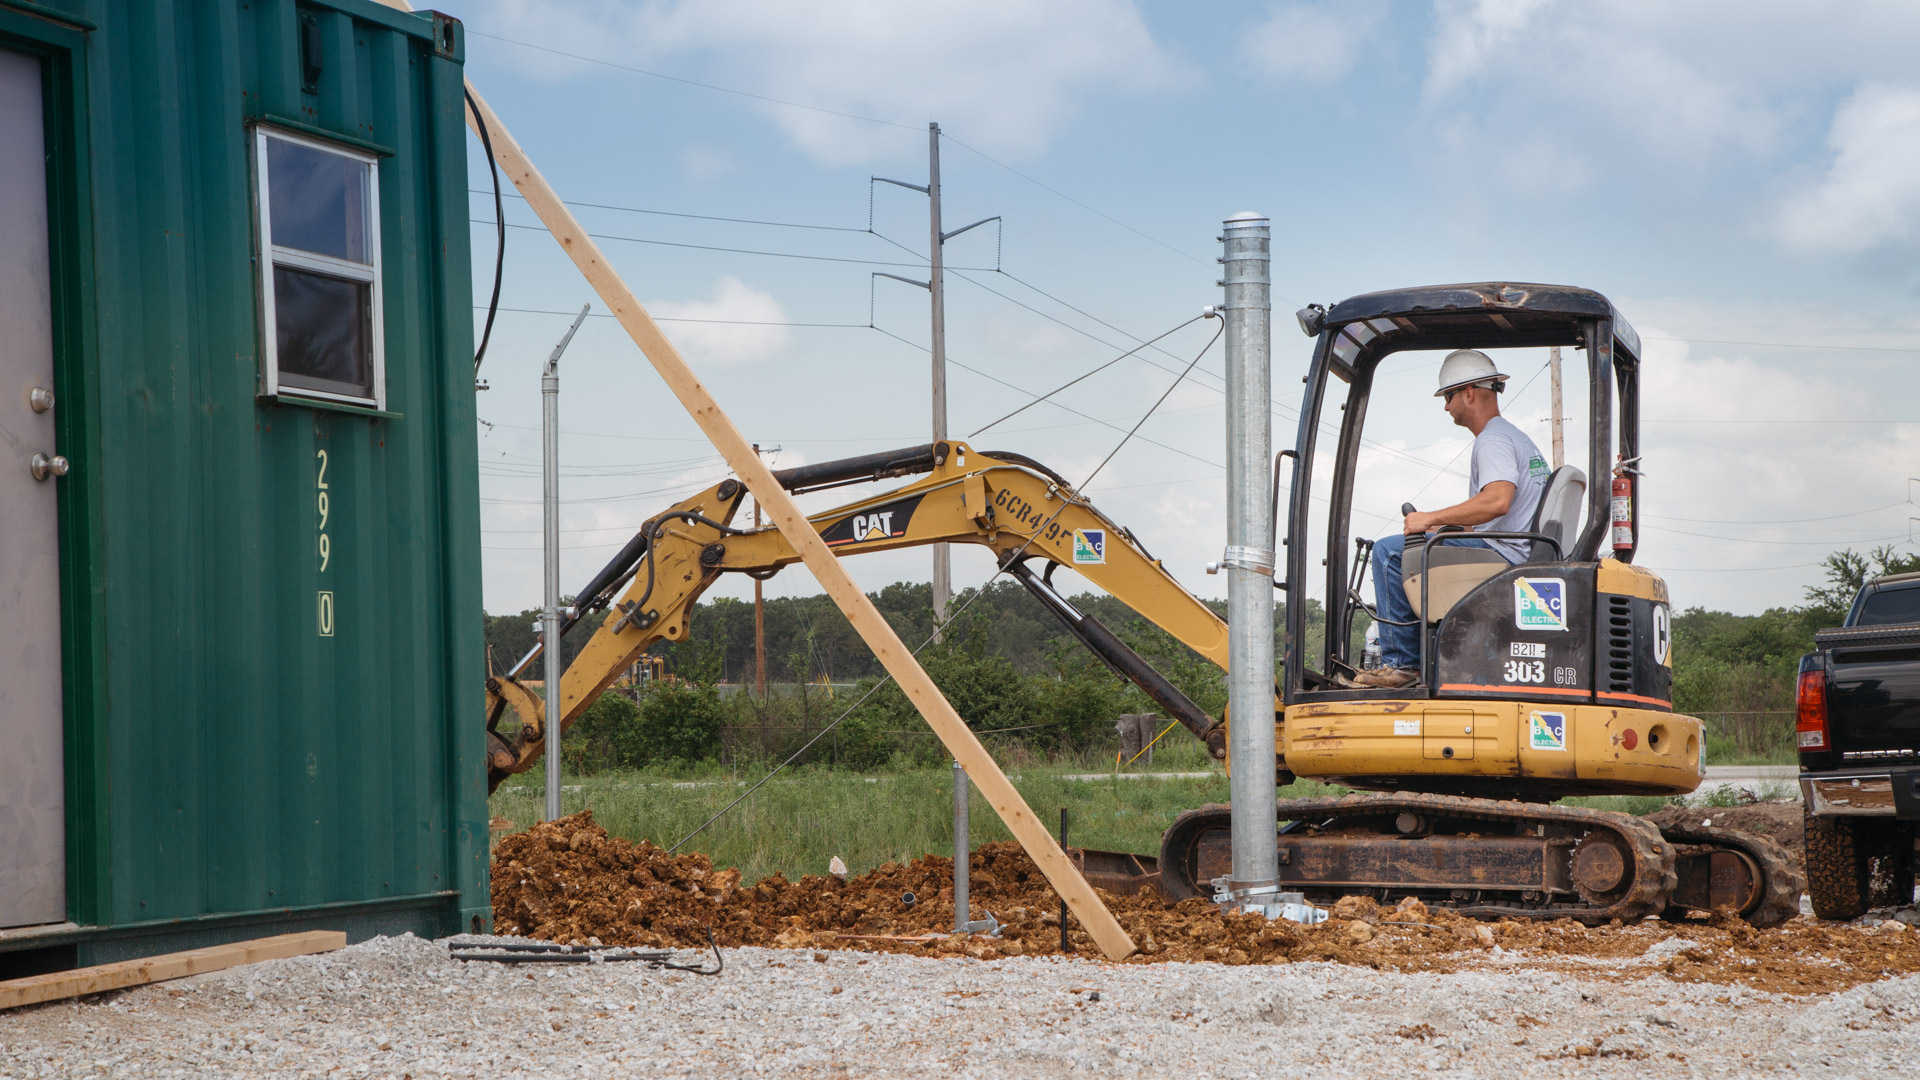 Image of initial construction at the Empire Substation in Joplin, MO.